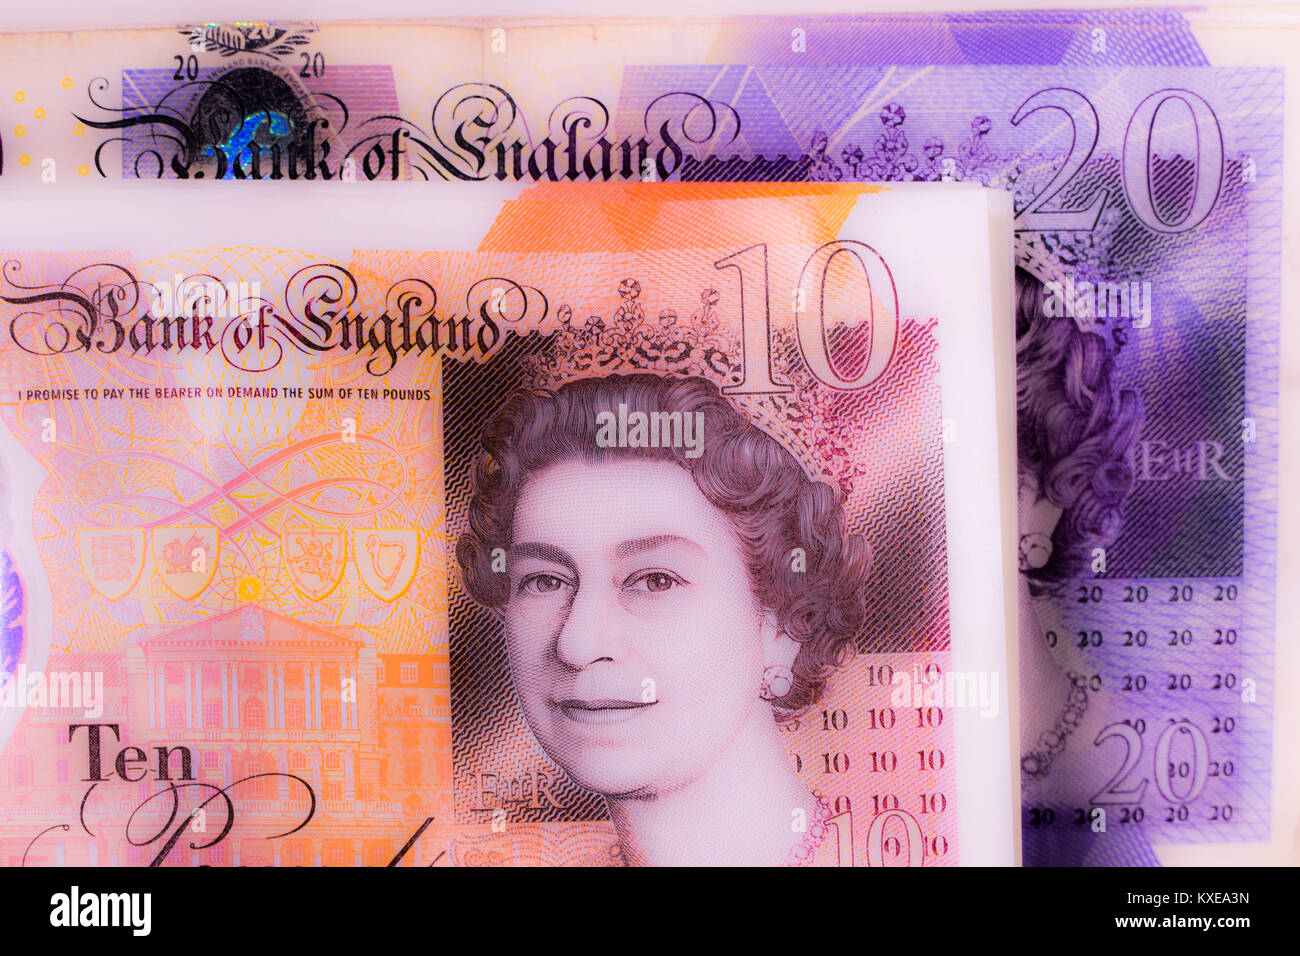 Nouveau €10 notes (10 livres) avec £20 notes derrière. Devises Pound Sterling libre. Concept de UK / la Photo Stock